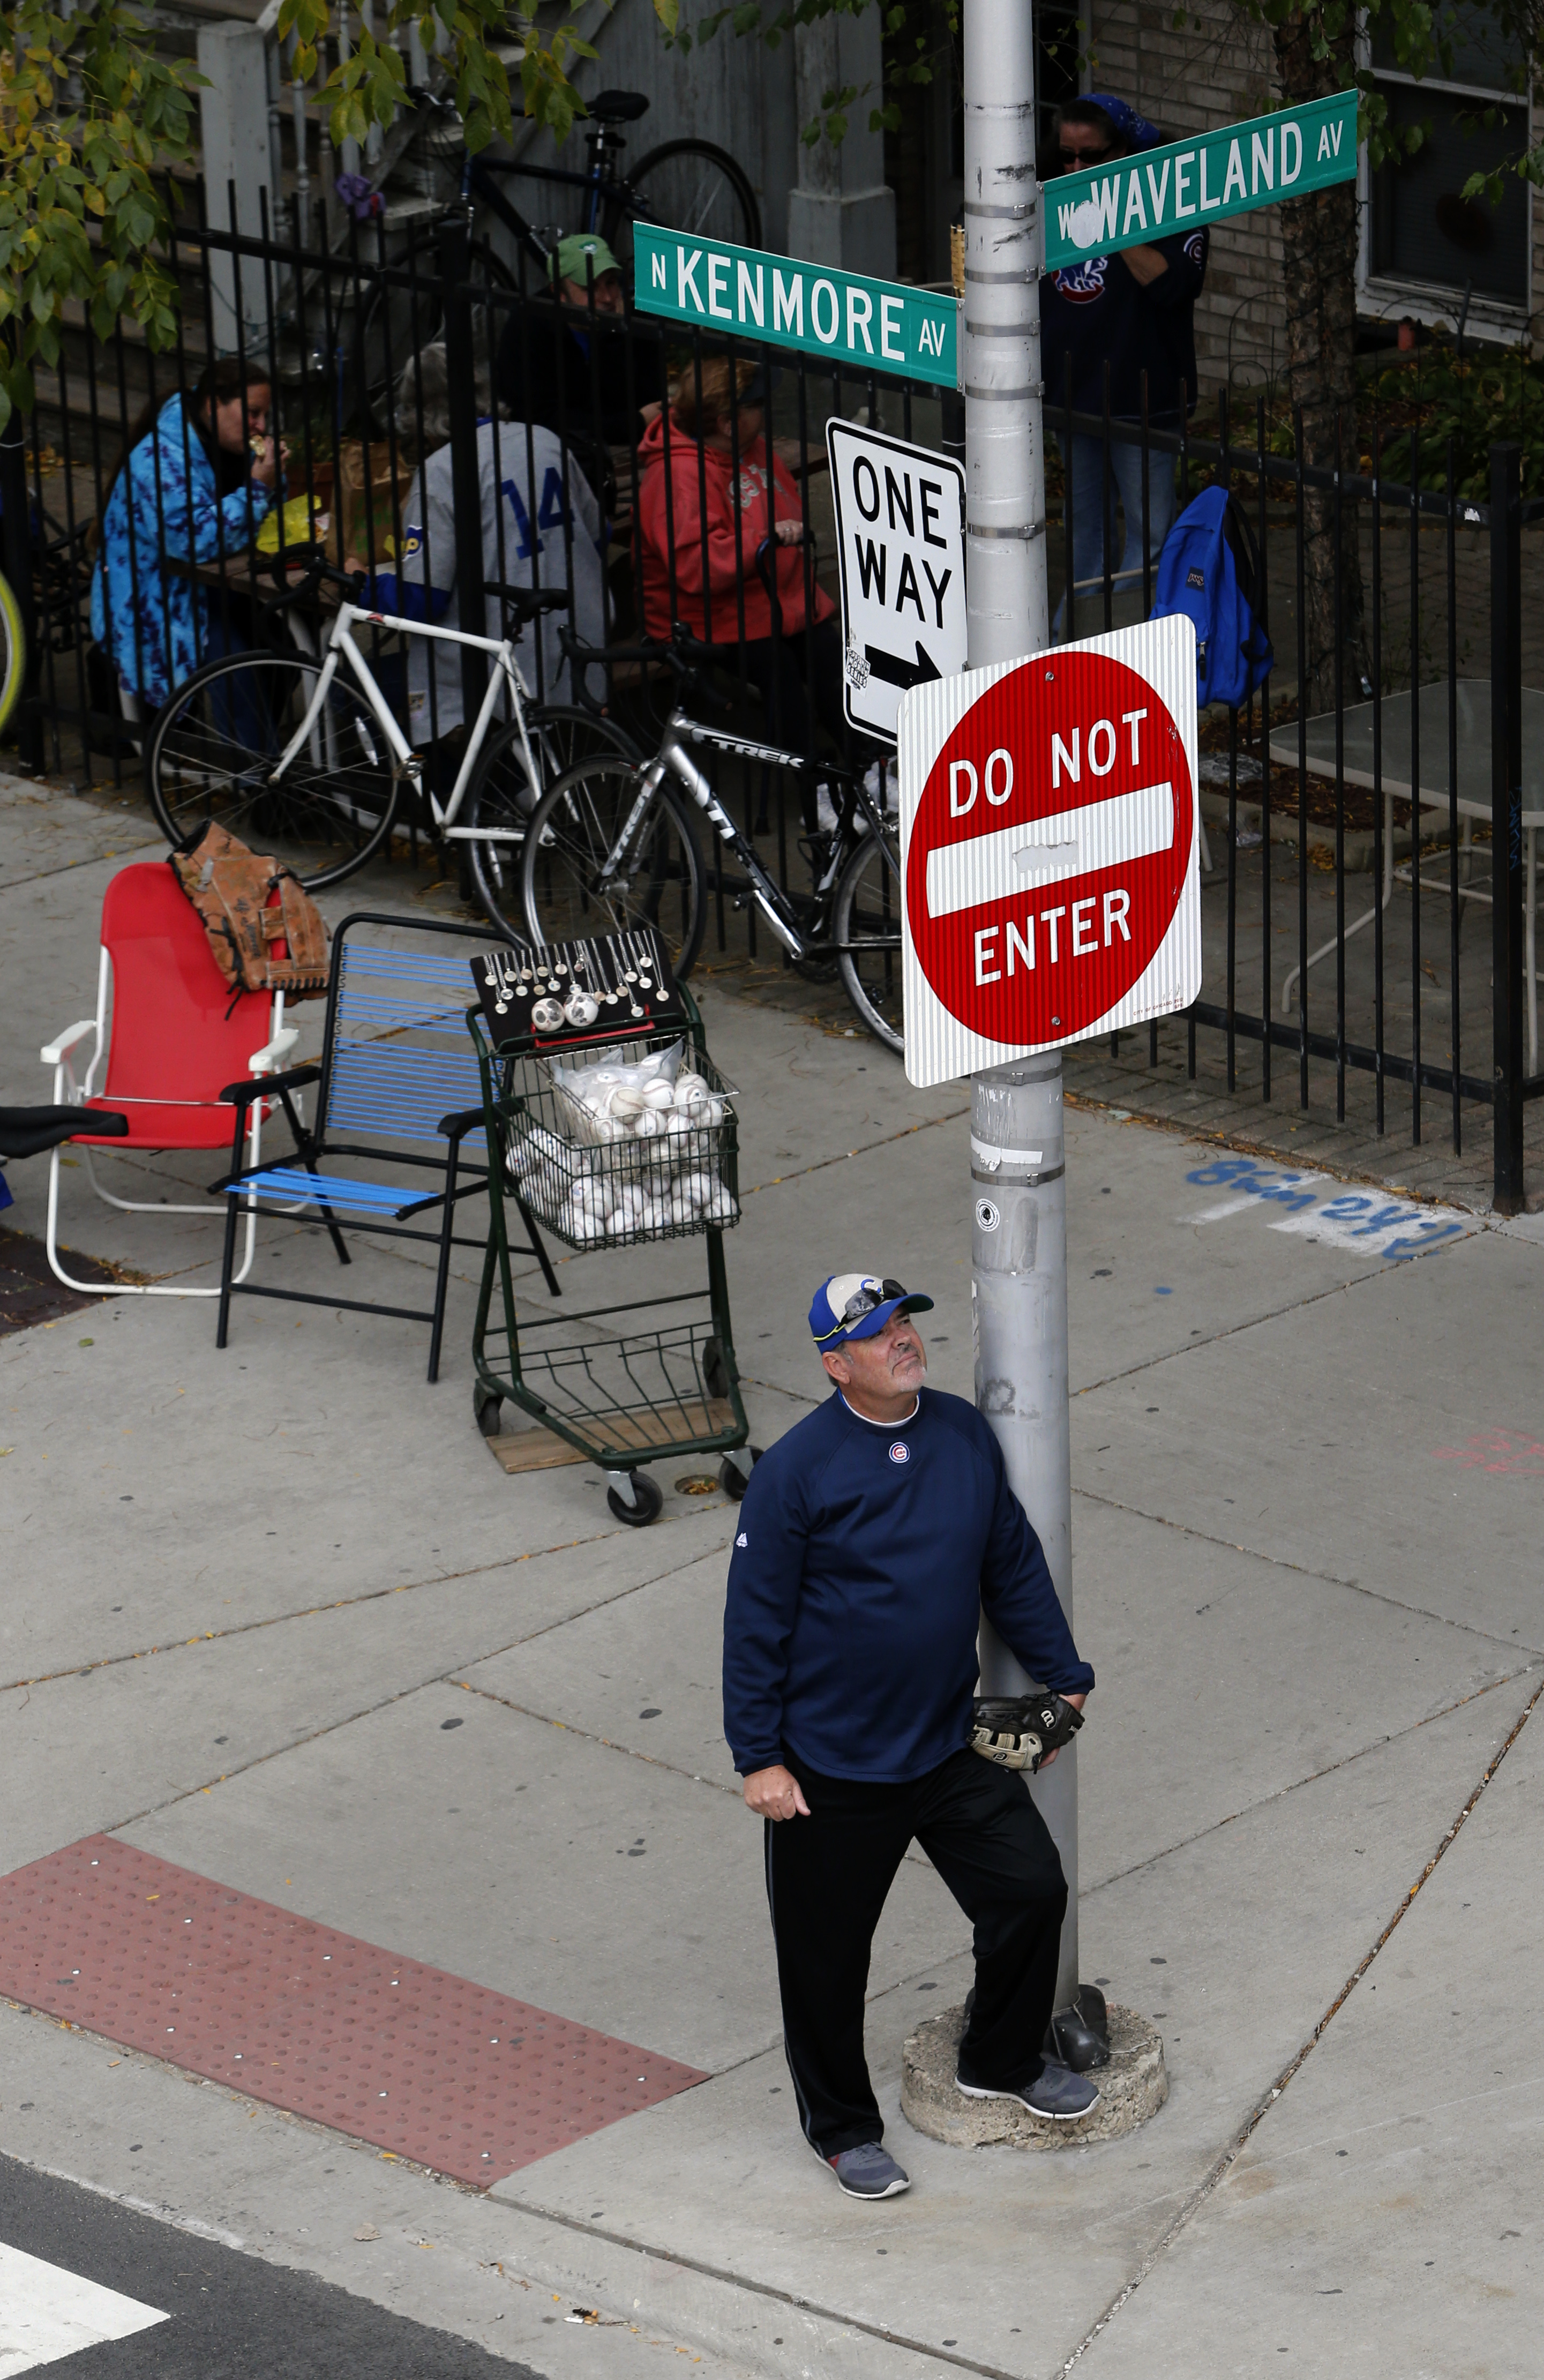 As one of many ballhawks position along Waveland Avenue across the street from Wrigley Field, Ross McKeon from San Francisco waits for a ball during batting practice before Game 4 in baseball's National League Division Series between the Chicago Cubs and